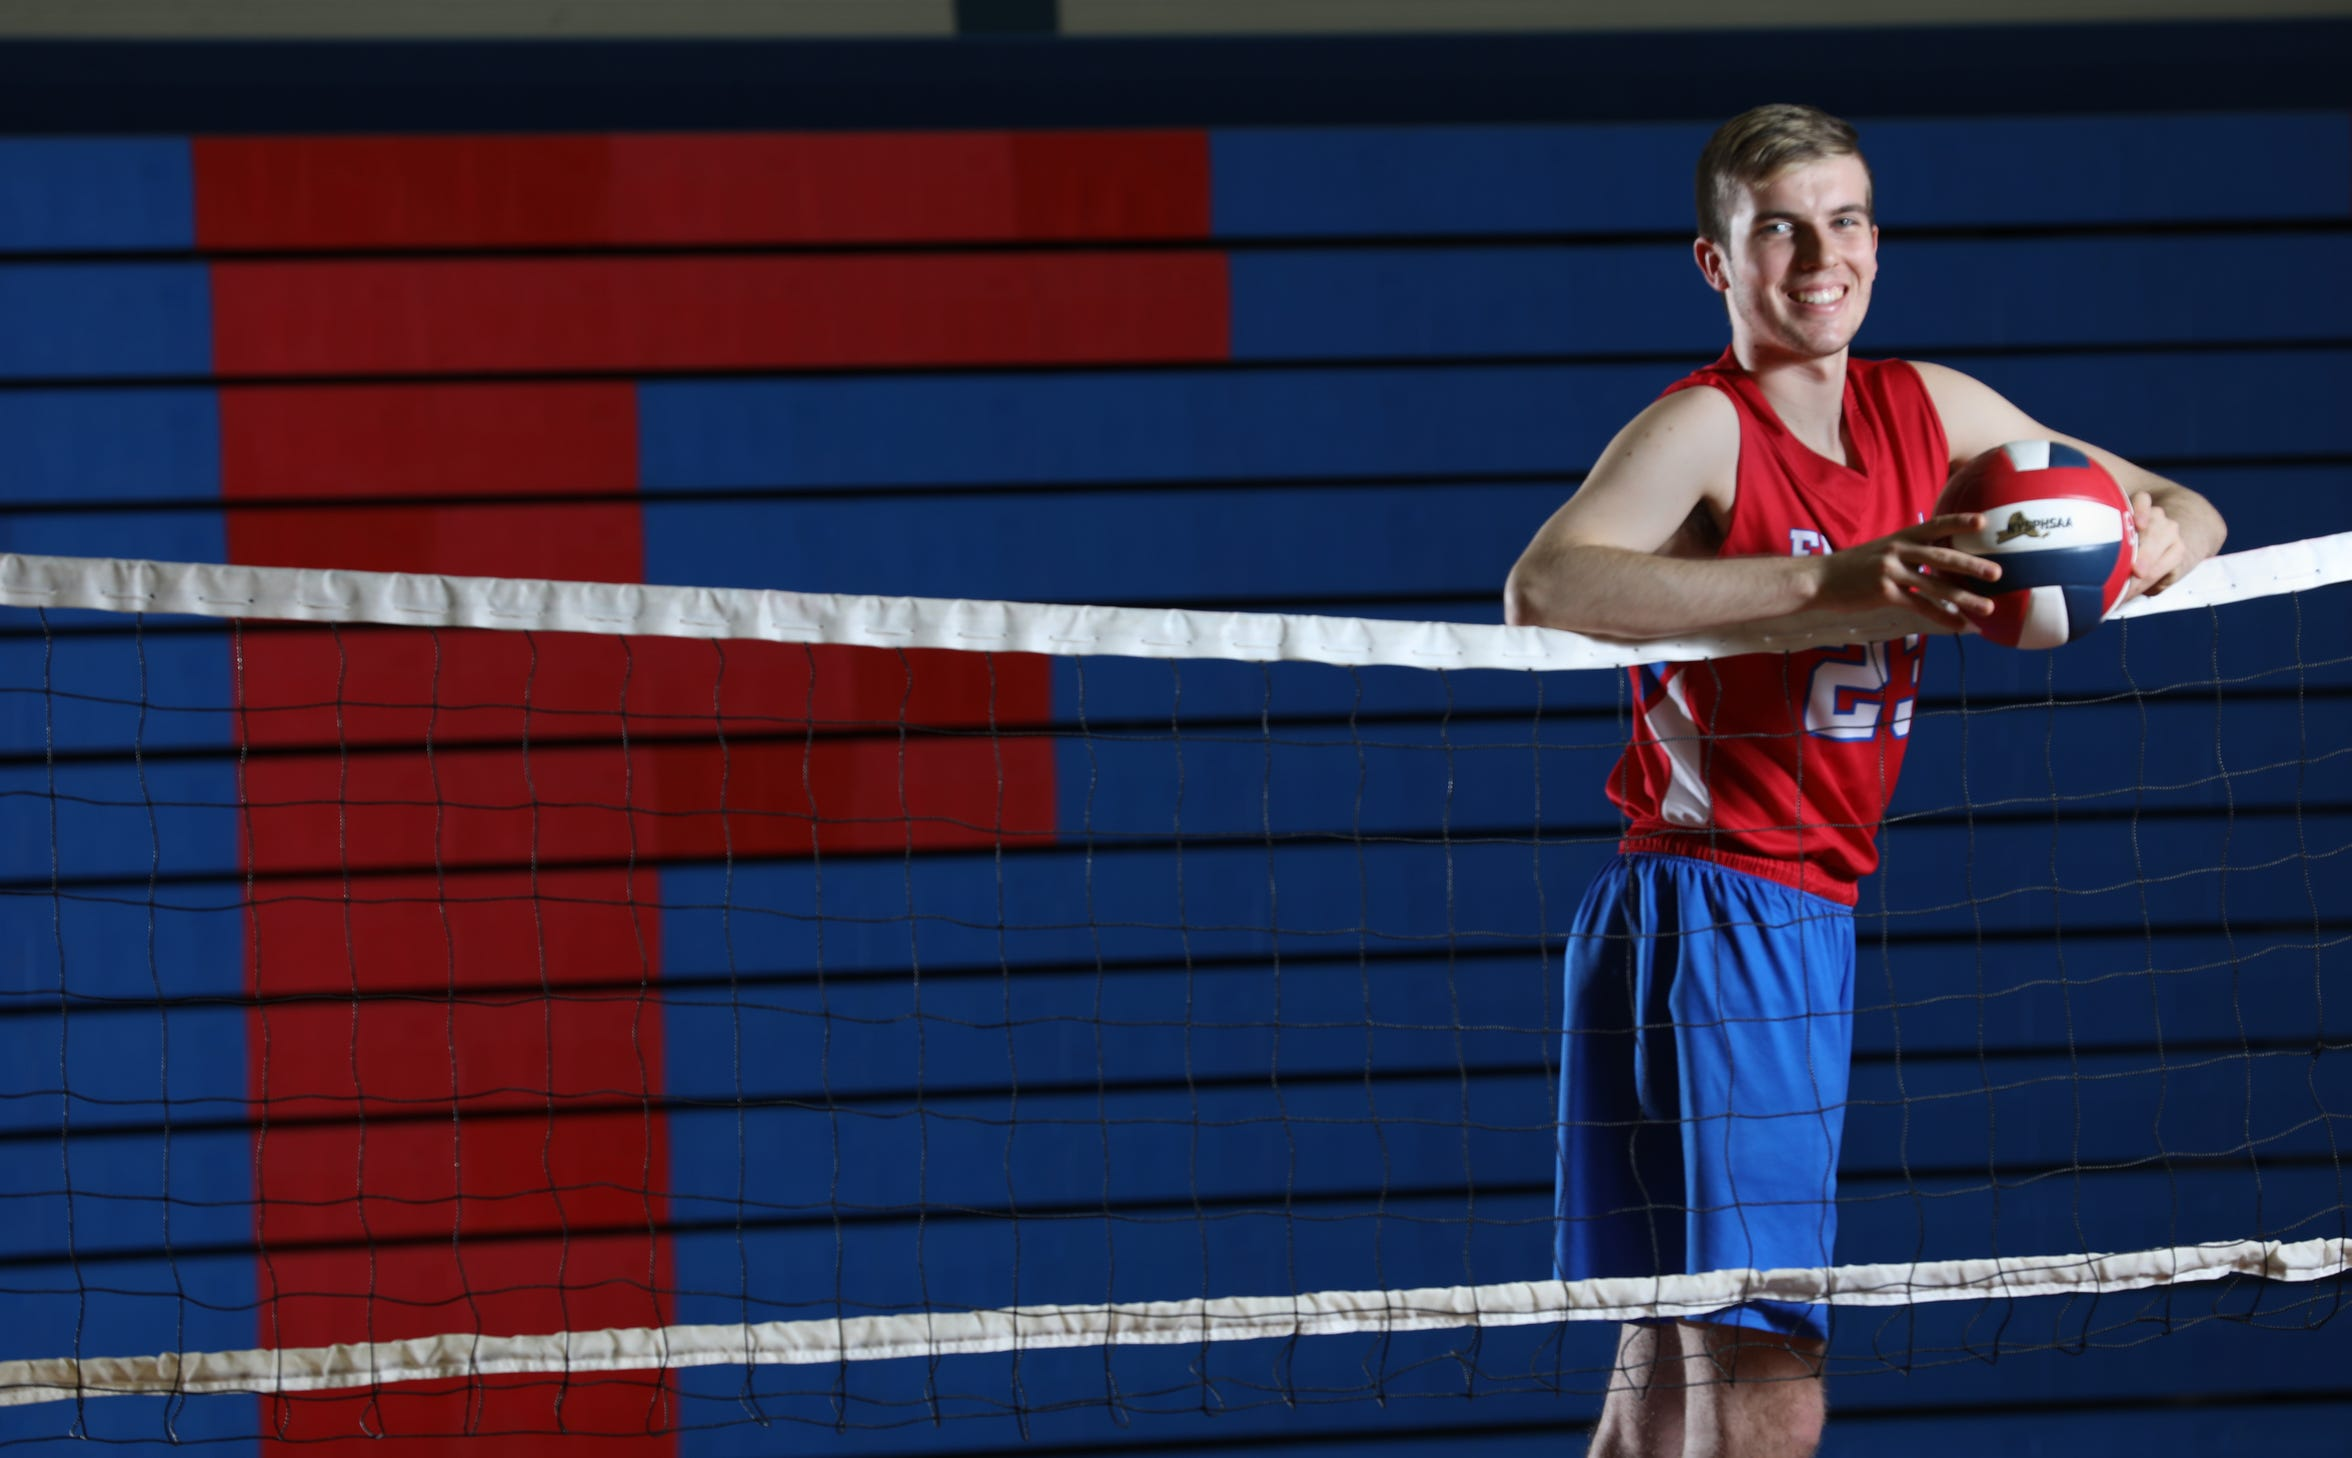 Fall AGR 2018.Ryan Parker, Fairport, AGR VOLLEYBALL PLAYER OF THE YEAR 2018.